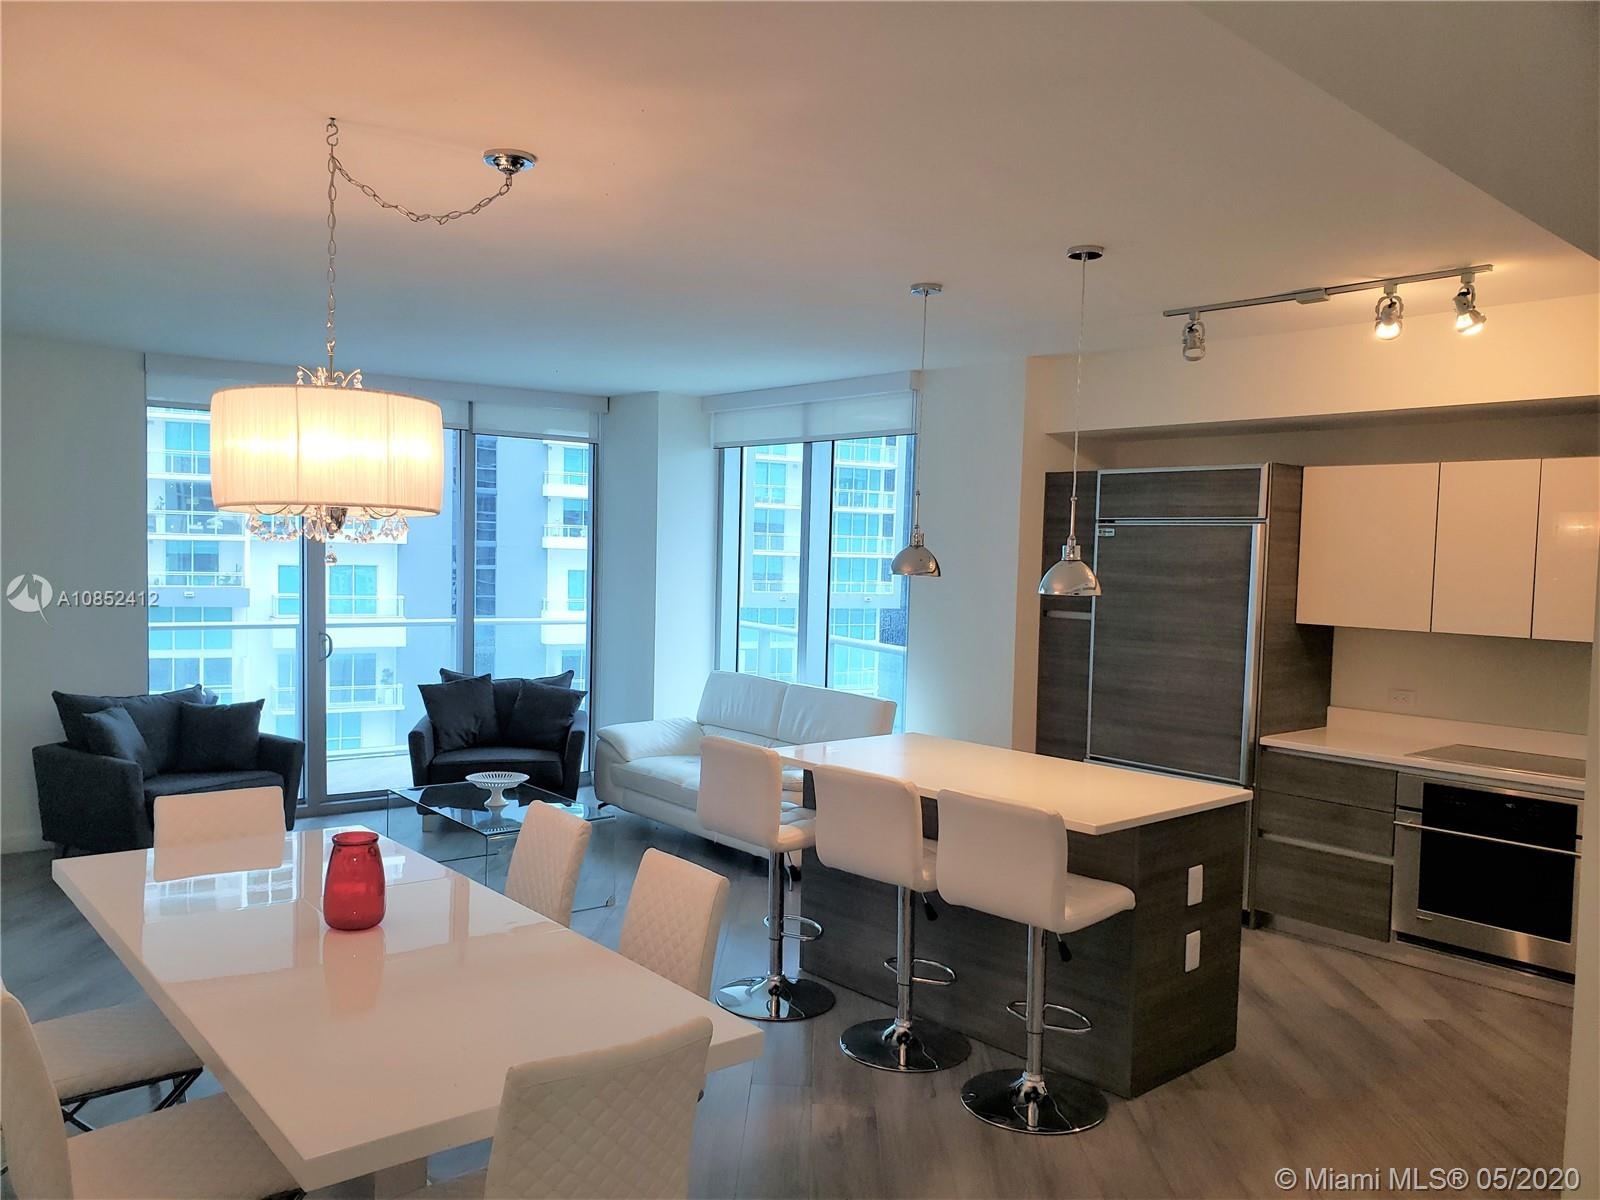 BRING YOUR OFFERS WITH YOUR TOOTHBRUSH TO THIS Tastefully furnished unit in the most desirable line in the building (01 line, corner unit). Large balcony with great skyline views! Furniture from Modani, Sony smart TVs, Quartz kitchen counter tops throughout, porcelain wood look tiles, GE Monogram appliances, customblack out shades, built out closets, 1 assigned self parking space near elevator 24 hour doorman, security water high speed internet and cable included Washer and dryer inside unit. Luxury building w great amenities; theater w state of the art audio/visual equipment, private cabanas, sauna, roof top pool, fitness center, kids room, lounge room. Centrally located steps from the Metro Mover. Within walking distance to fine restaurants, Brickell City Center& 8.5 miles from MIA